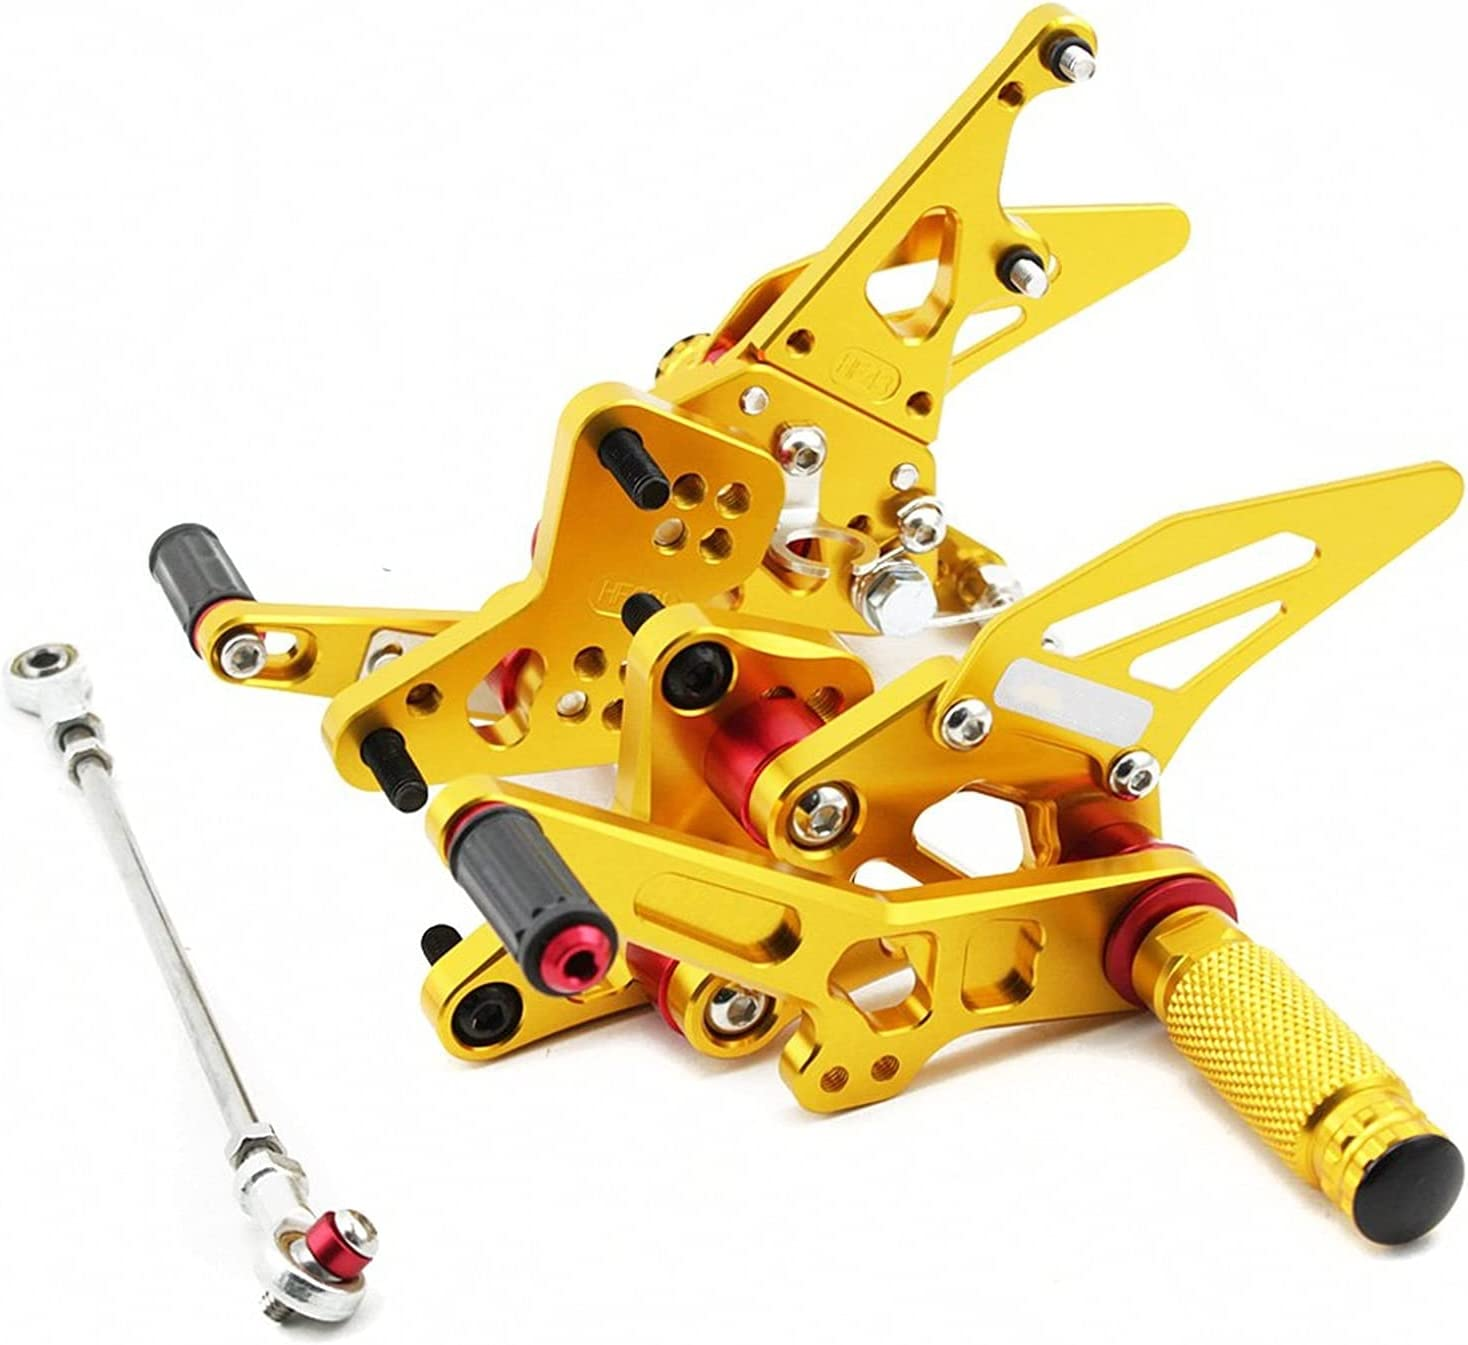 OFFicial site Demeanor Motorcycle Pedal outlet Full Aluminum CNC Adjustabl